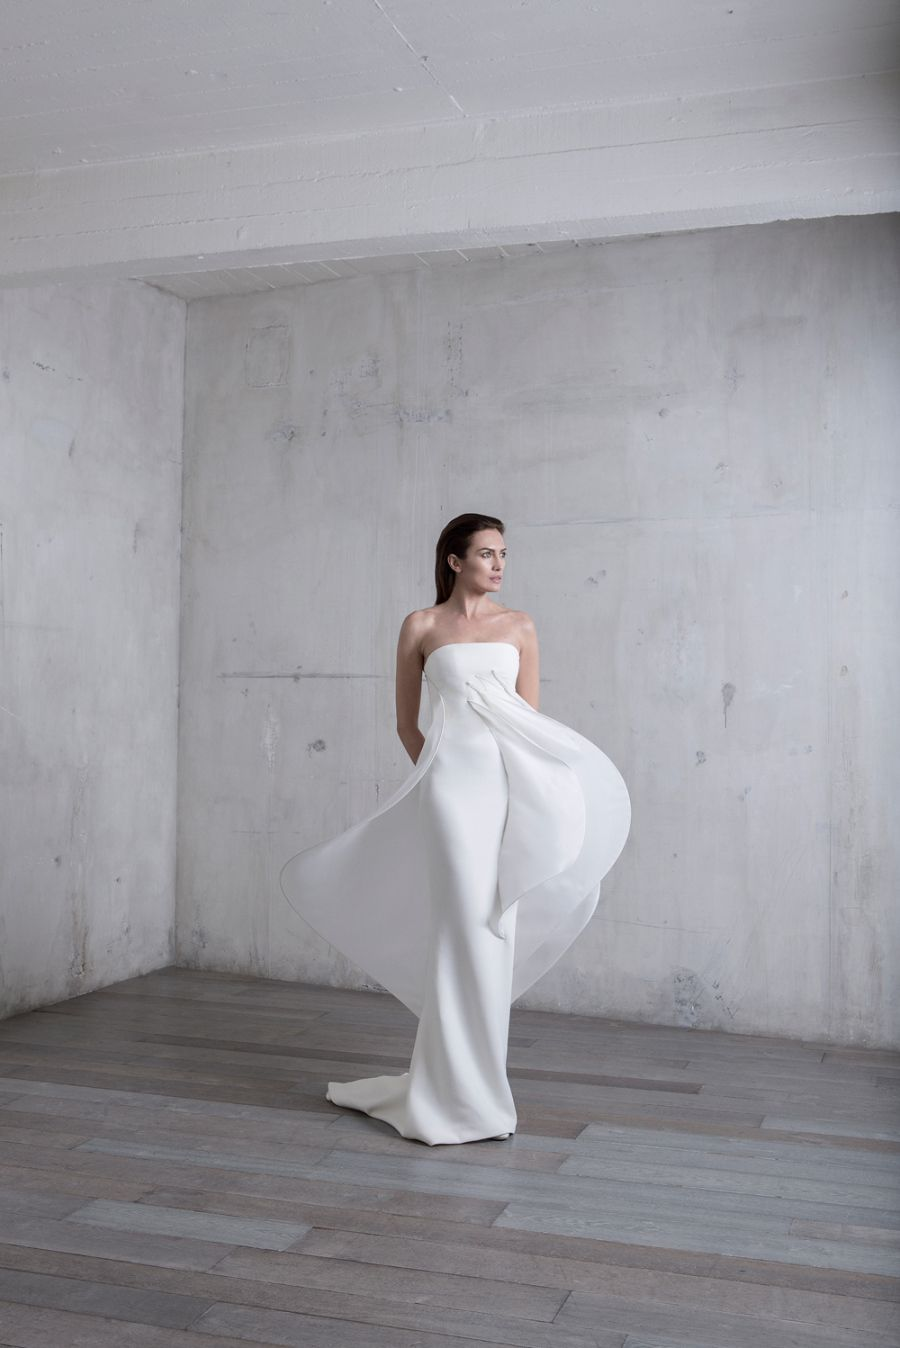 Thrift store wedding dress  Stephane RollandLong ellipse strapless dress in white wool crepe and